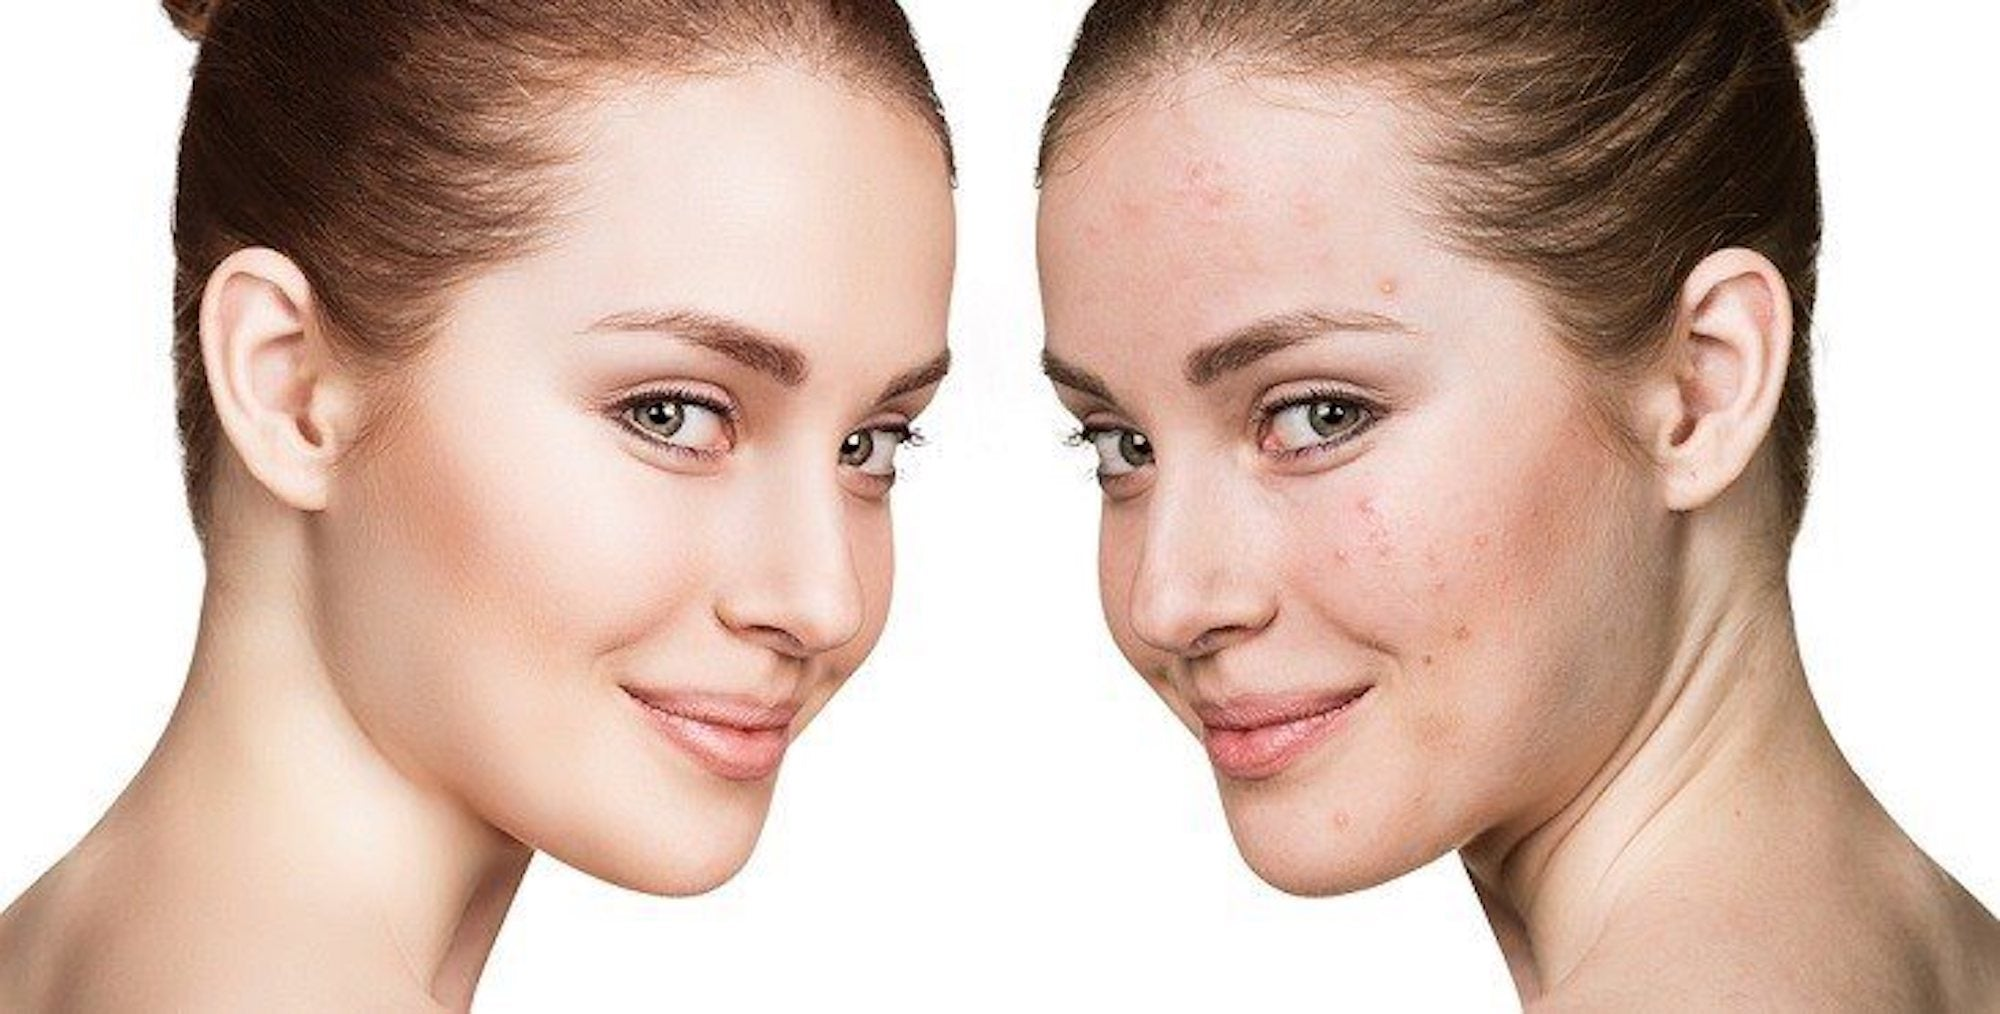 Acne-Prone Skin Care 8 Essential Products